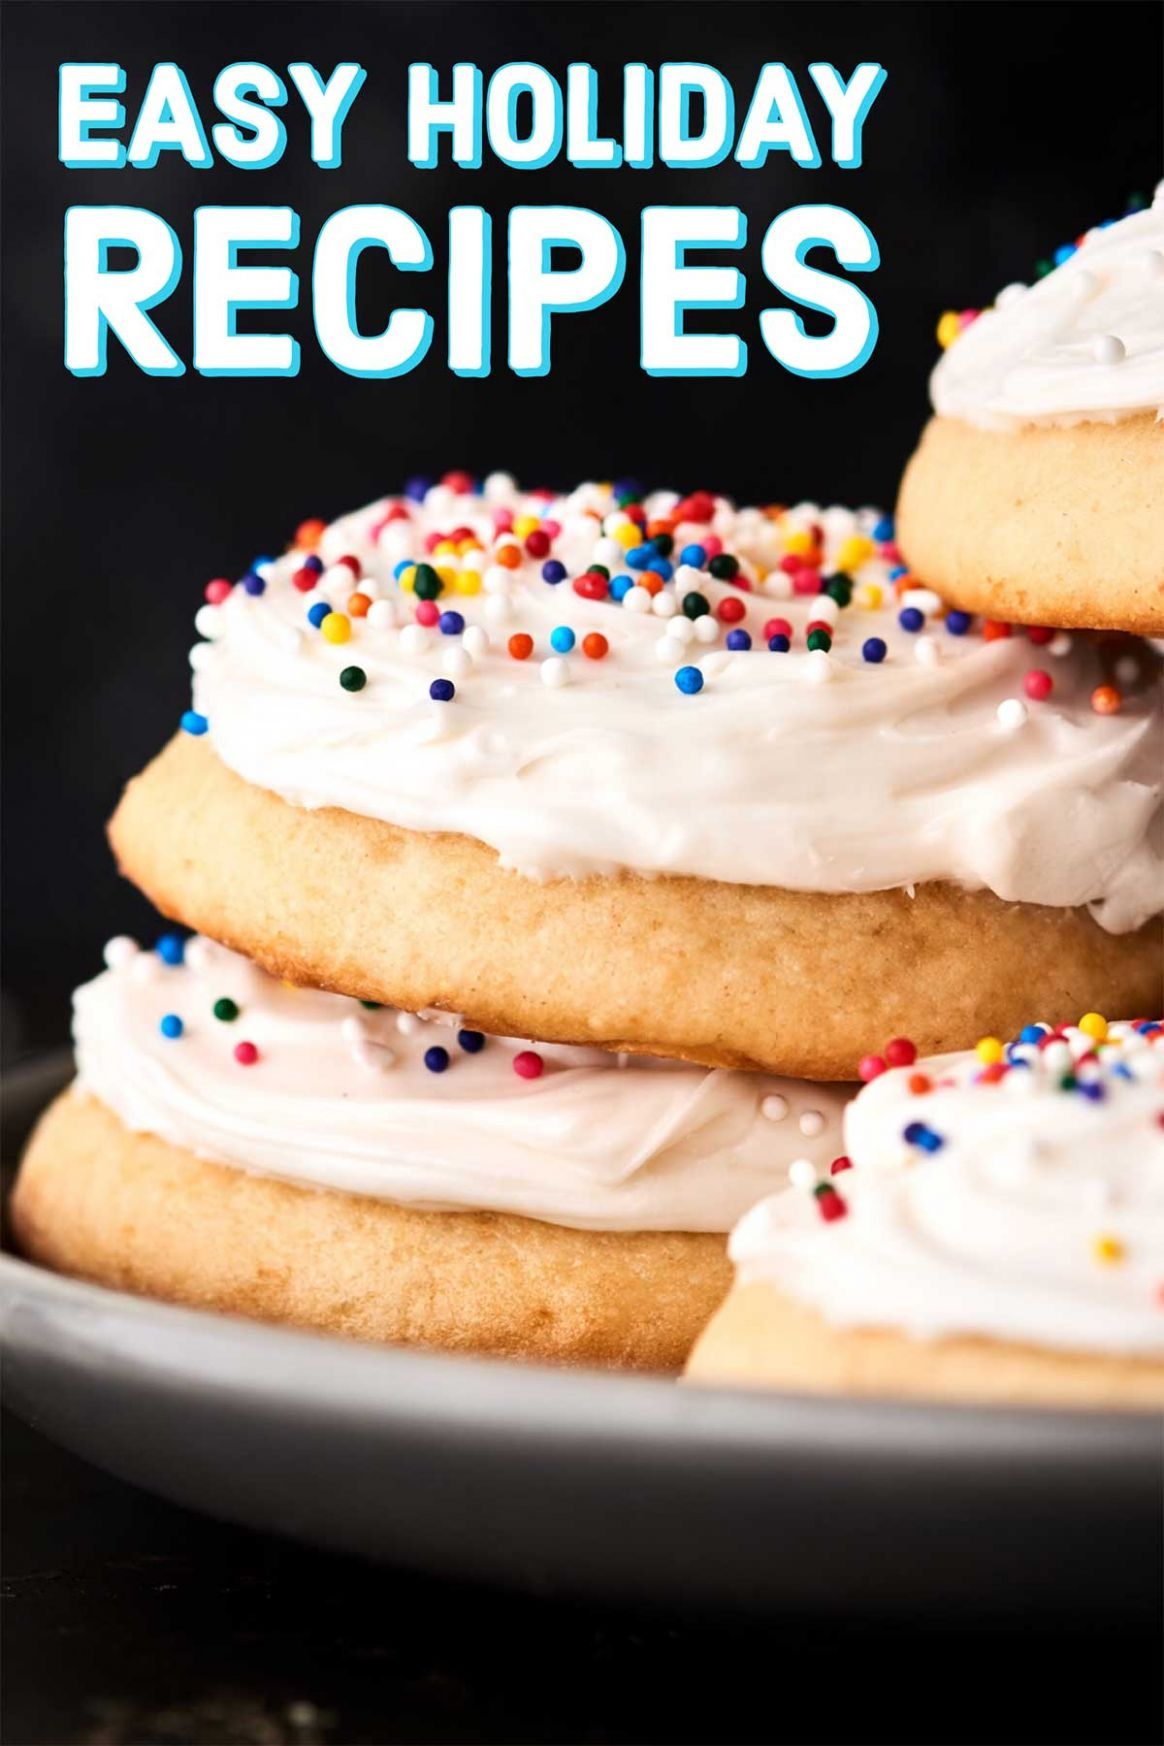 Easy Holiday Recipes 9 - Cookies, Breakfast, Appetizers, and More! - Easy Xmas Recipes